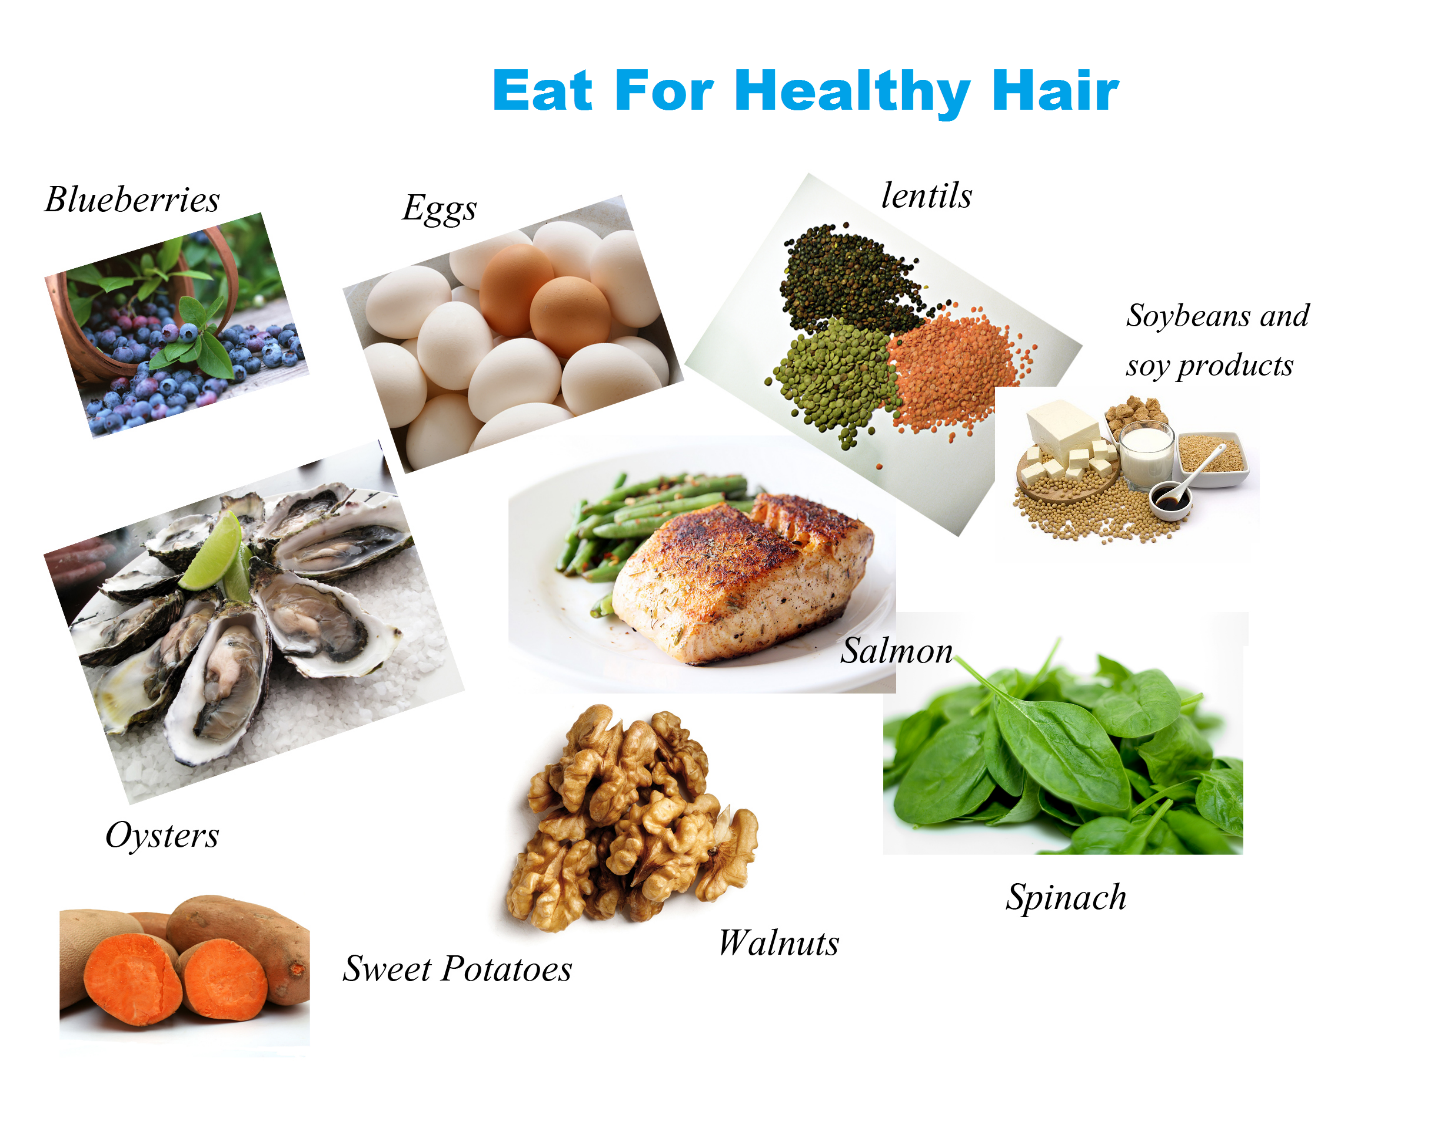 Eat-for-healthy-hair